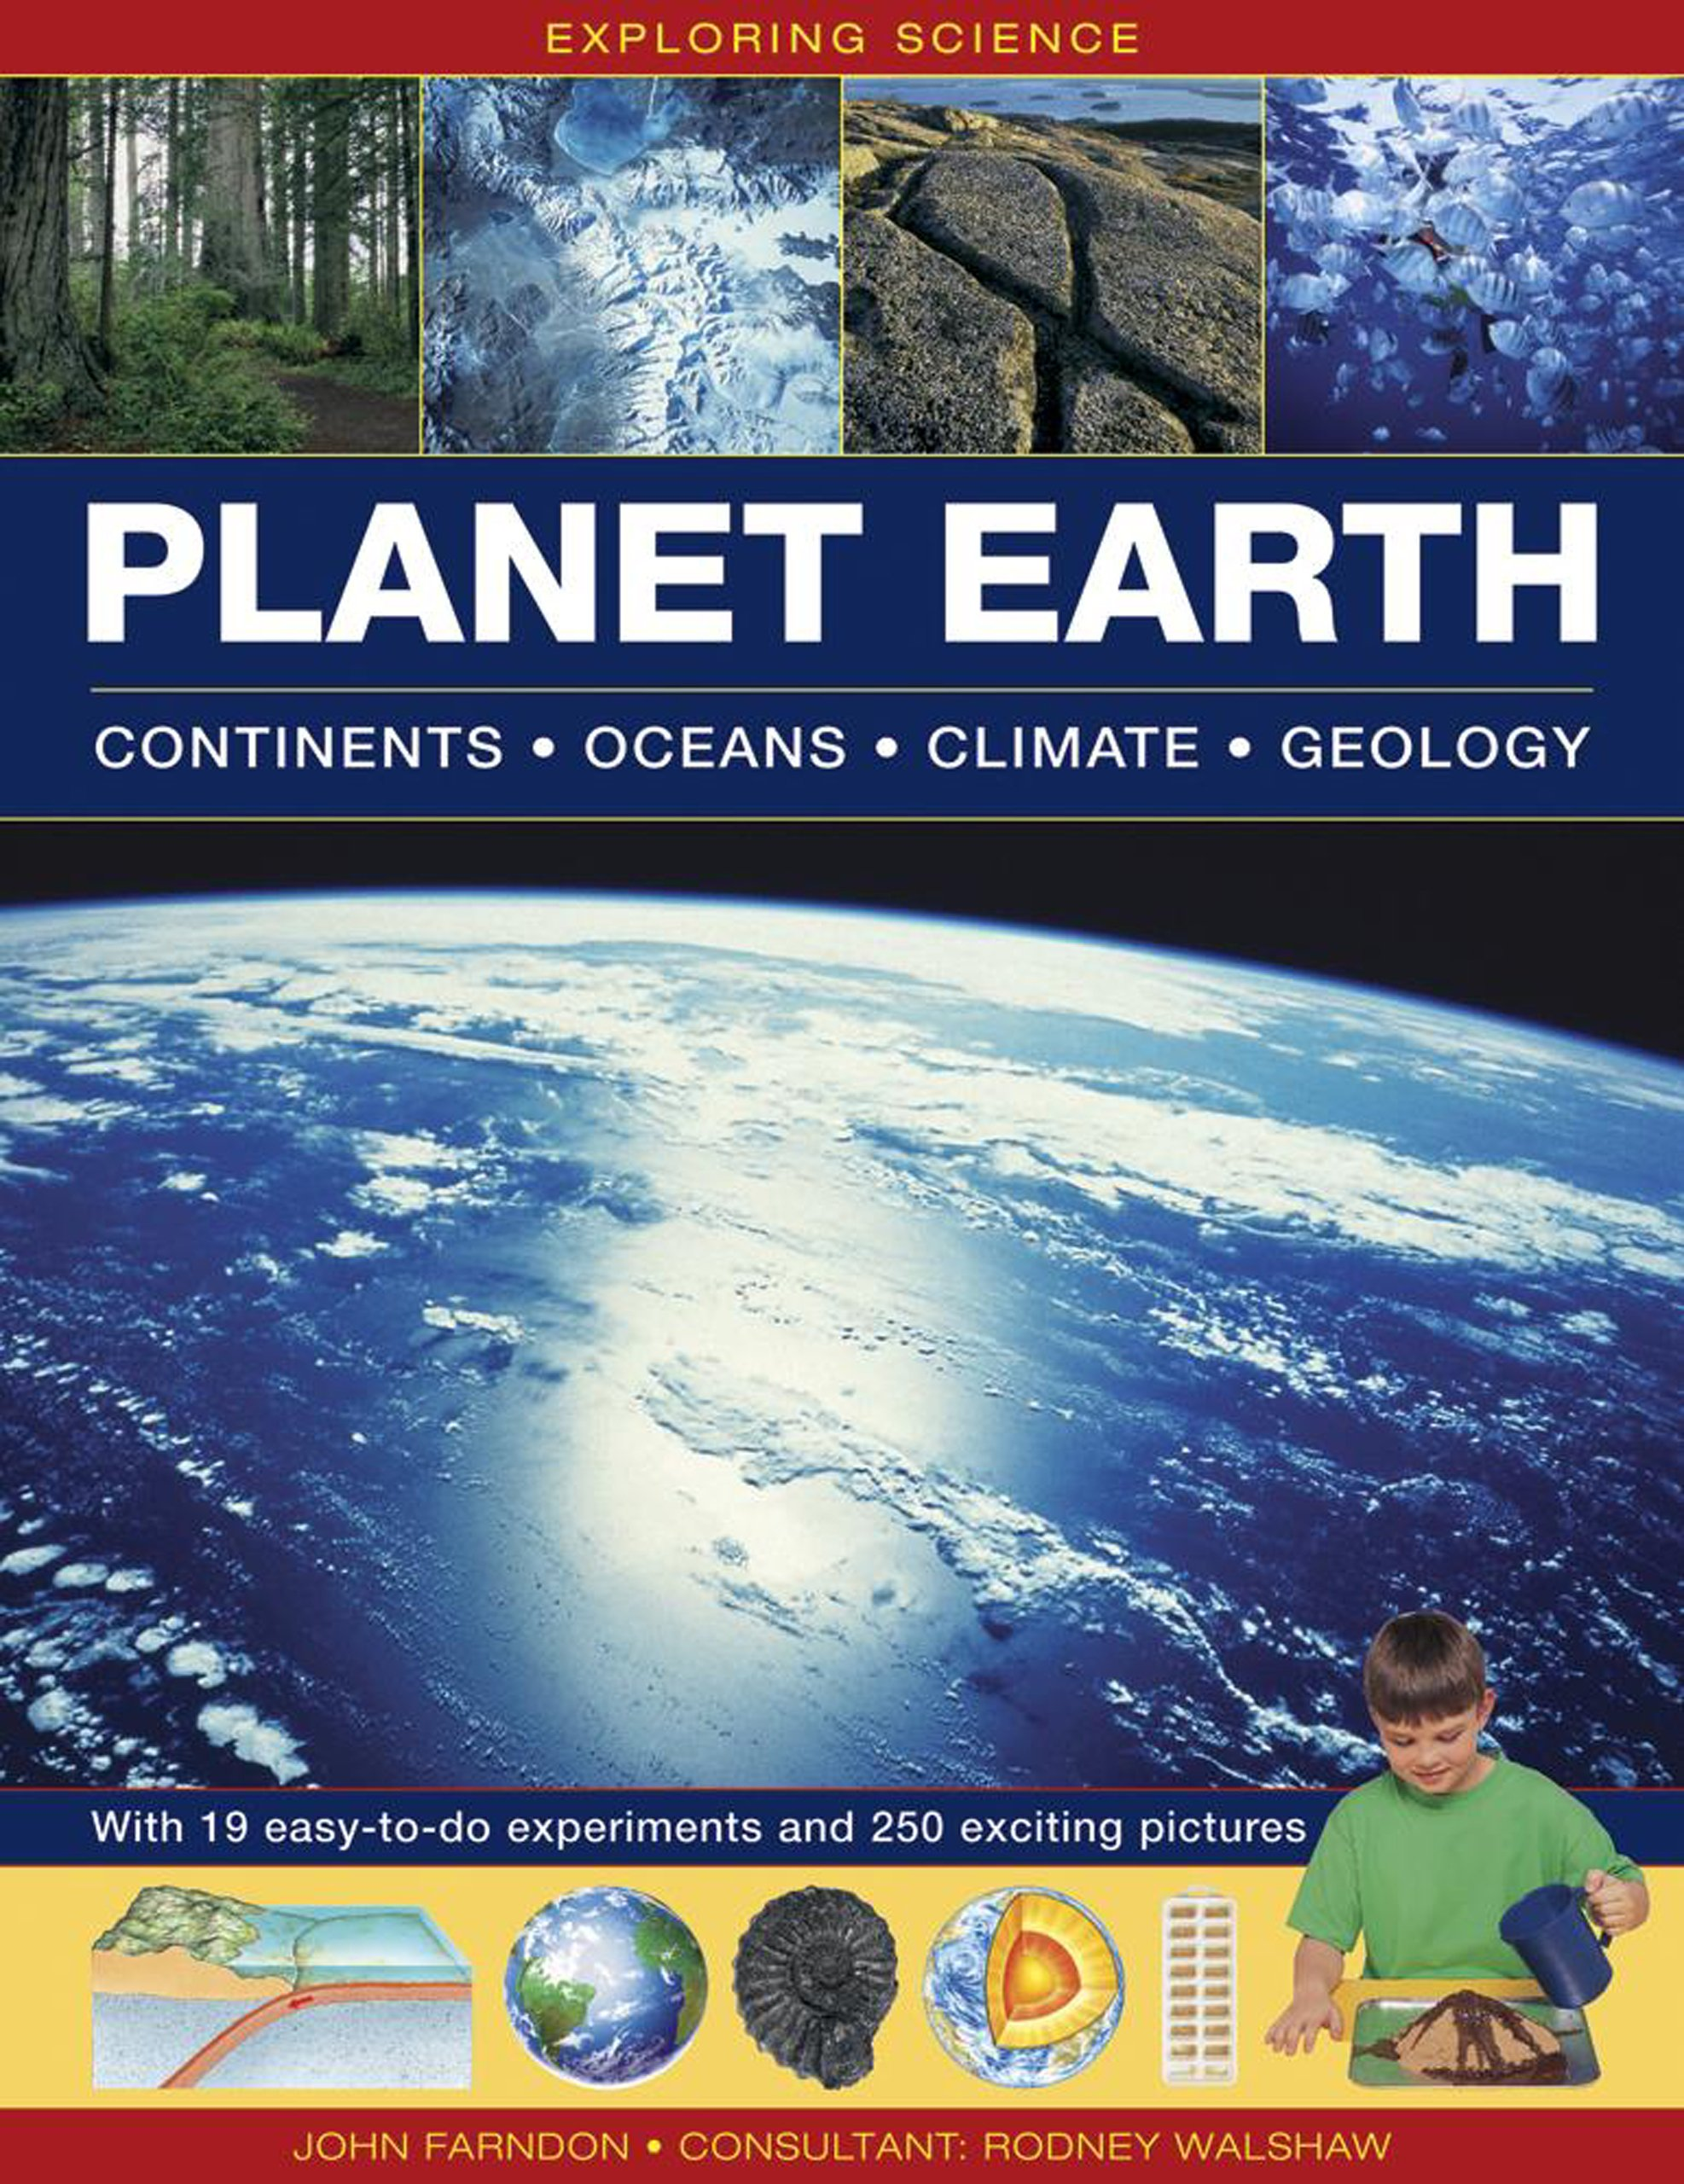 Read Online Exploring Science: Planet Earth: Continents, Oceans, Climate, Geology; With 19 Easy-To-Do Experiments and 250 Exciting Pictures pdf